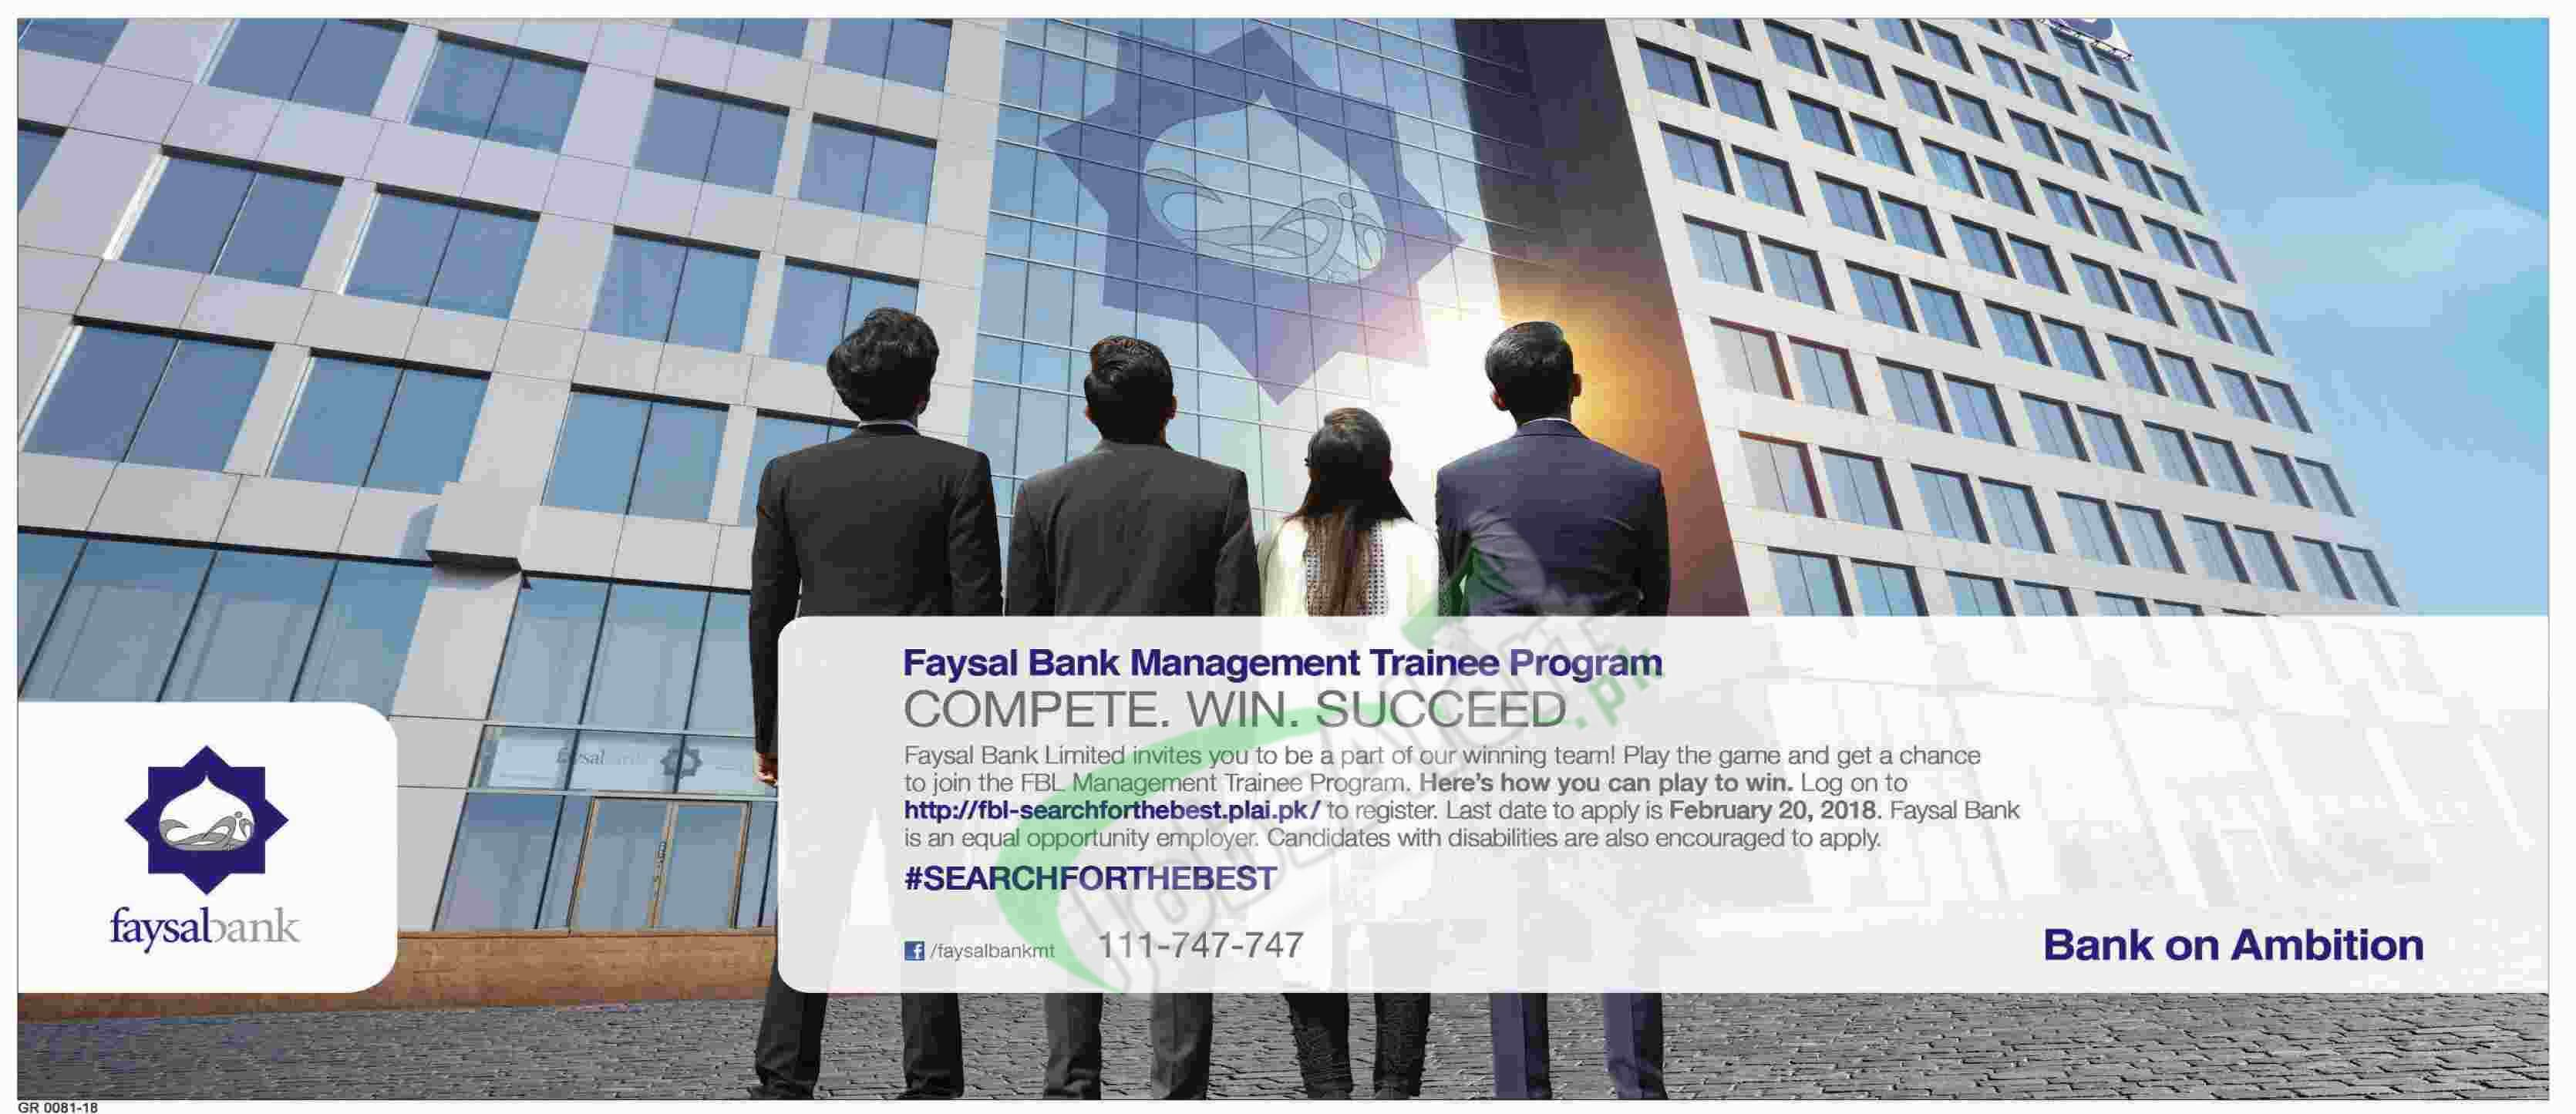 Faysal Bank Management Trainee Program 2019